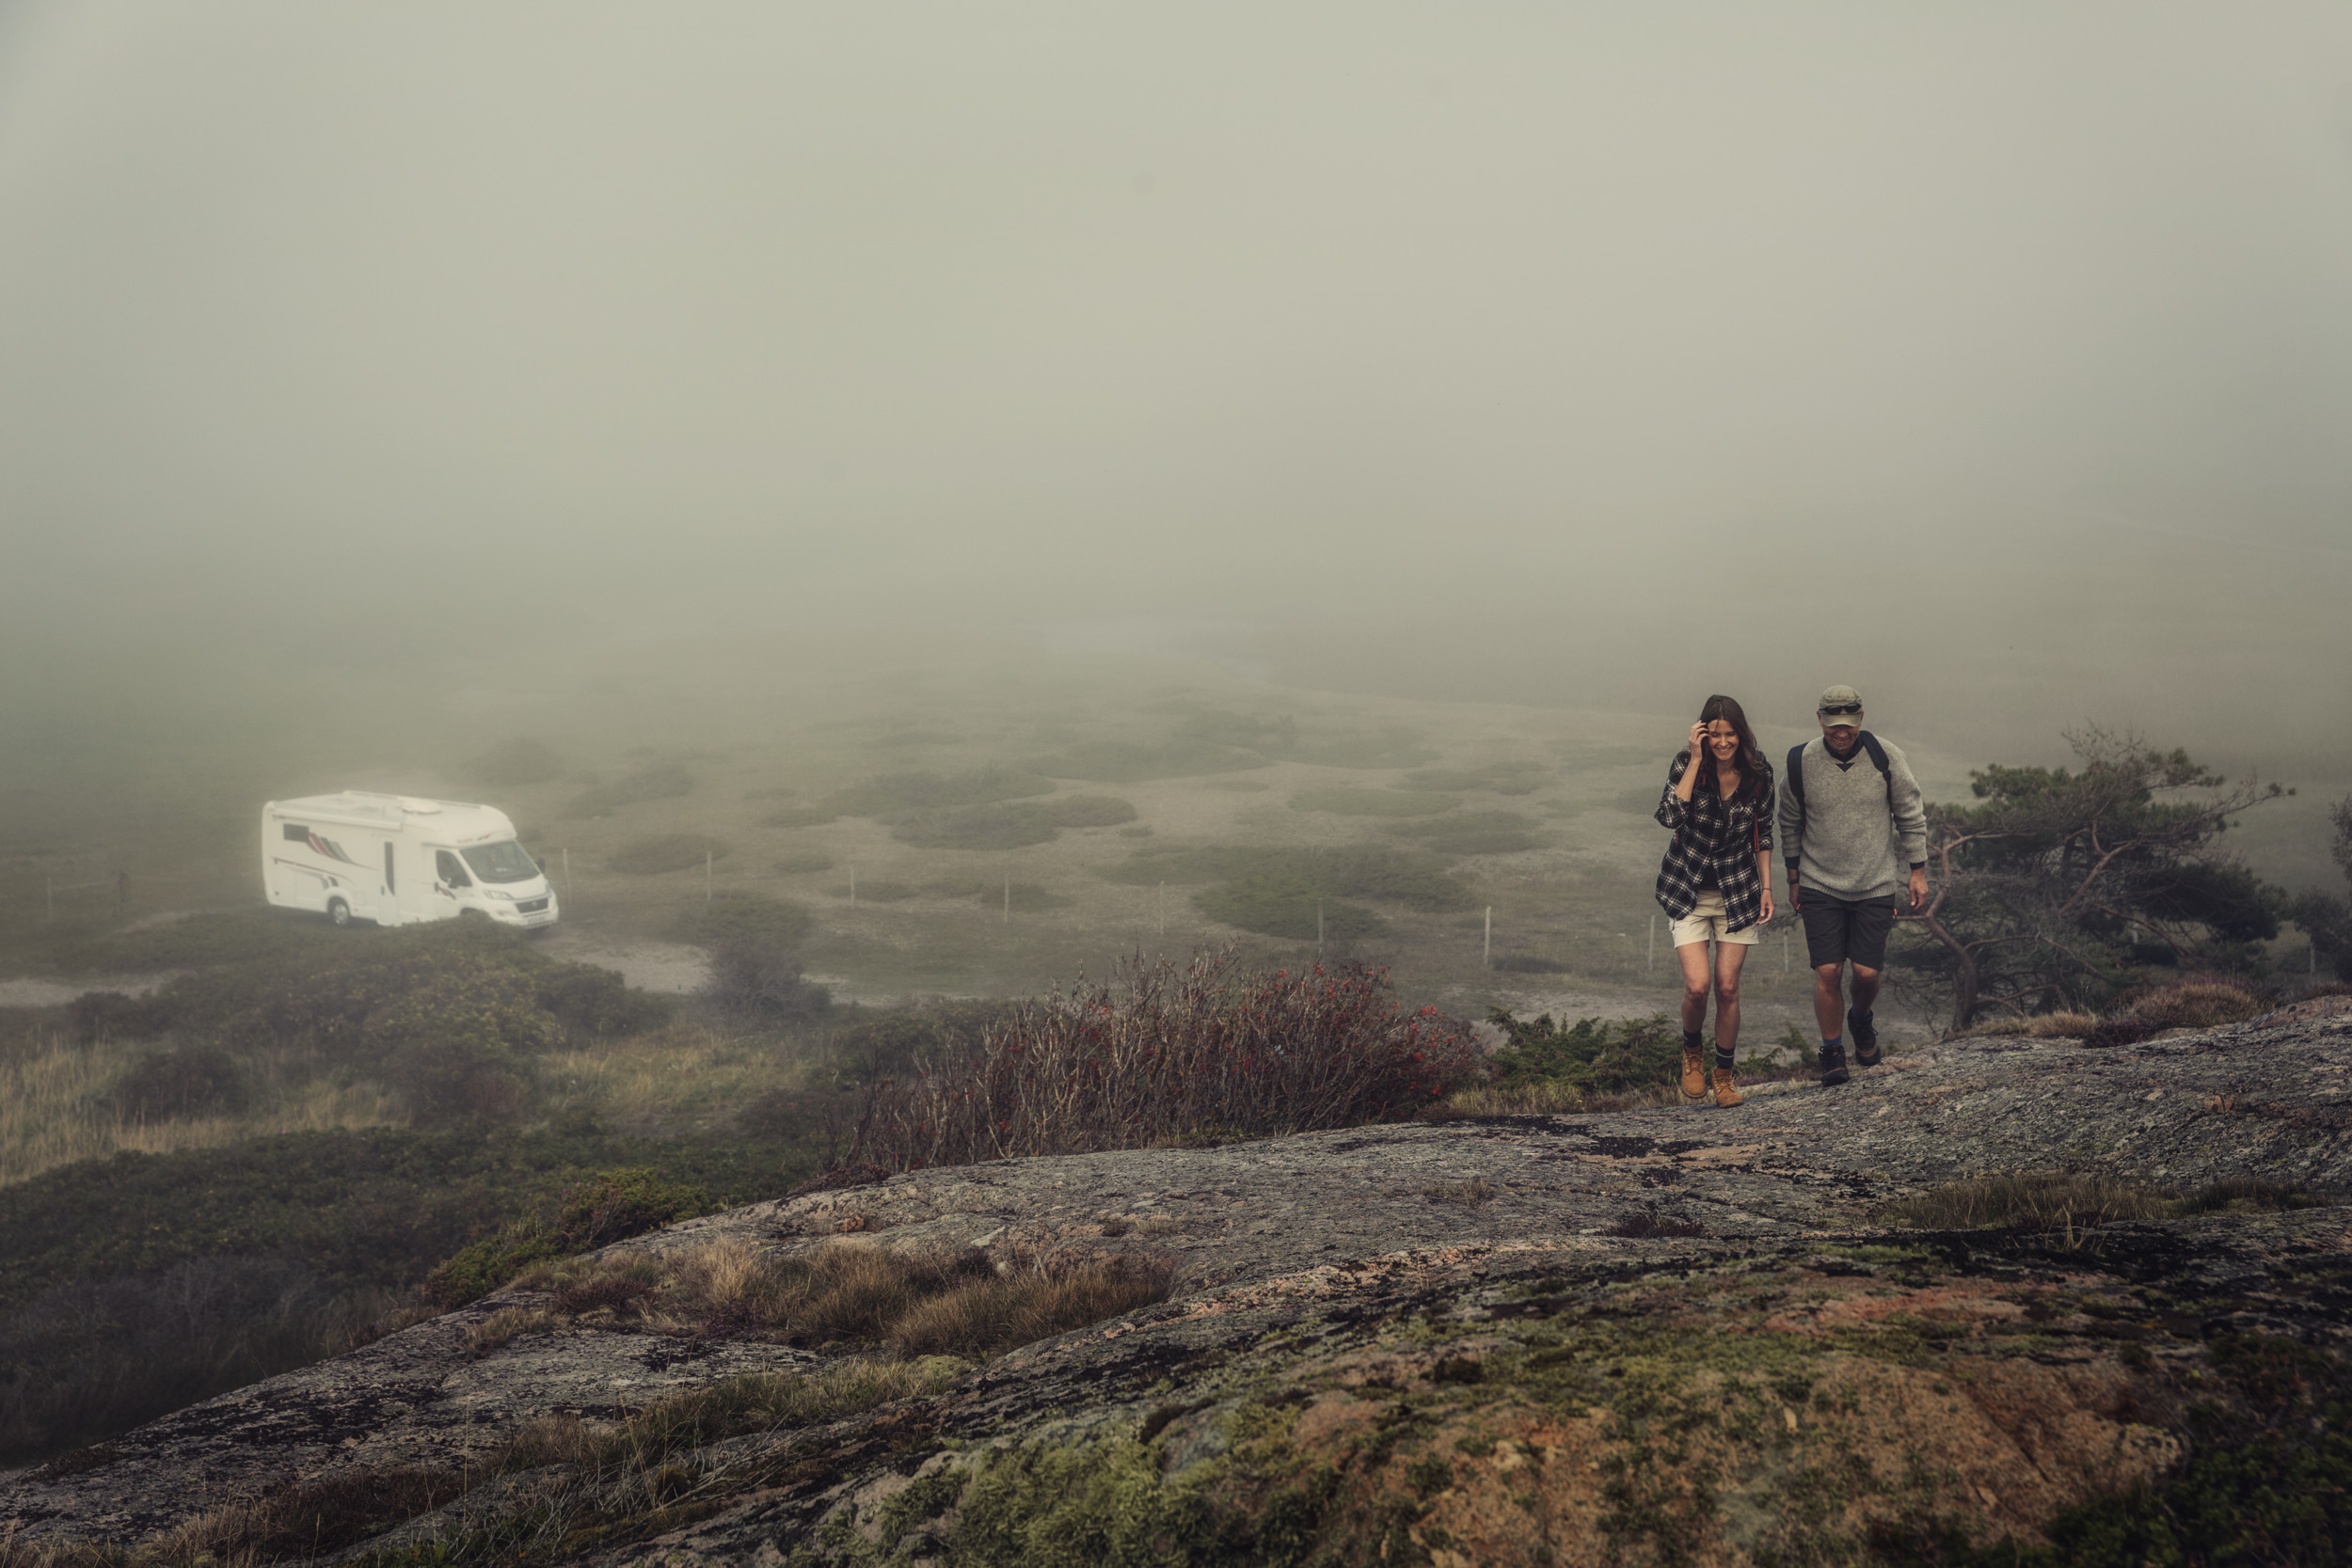 Dometic, rv, hike, cliff, fog, cloud, grey, dark, nature, lifestyle, couple, family, walk